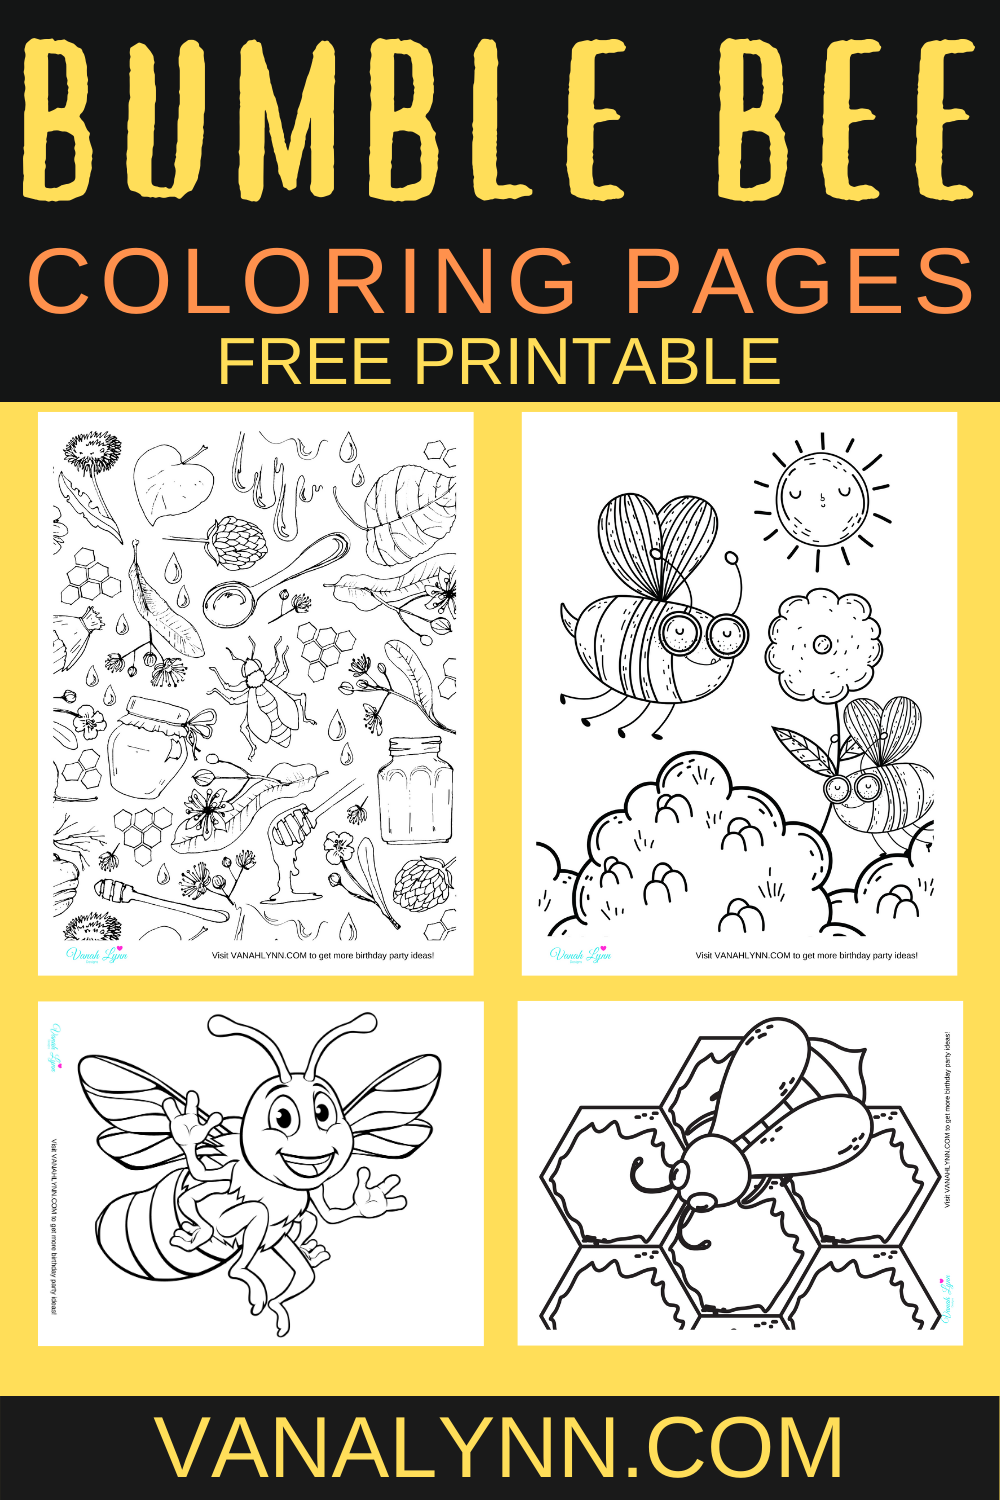 free printable bumble bee coloring pages for a toddler